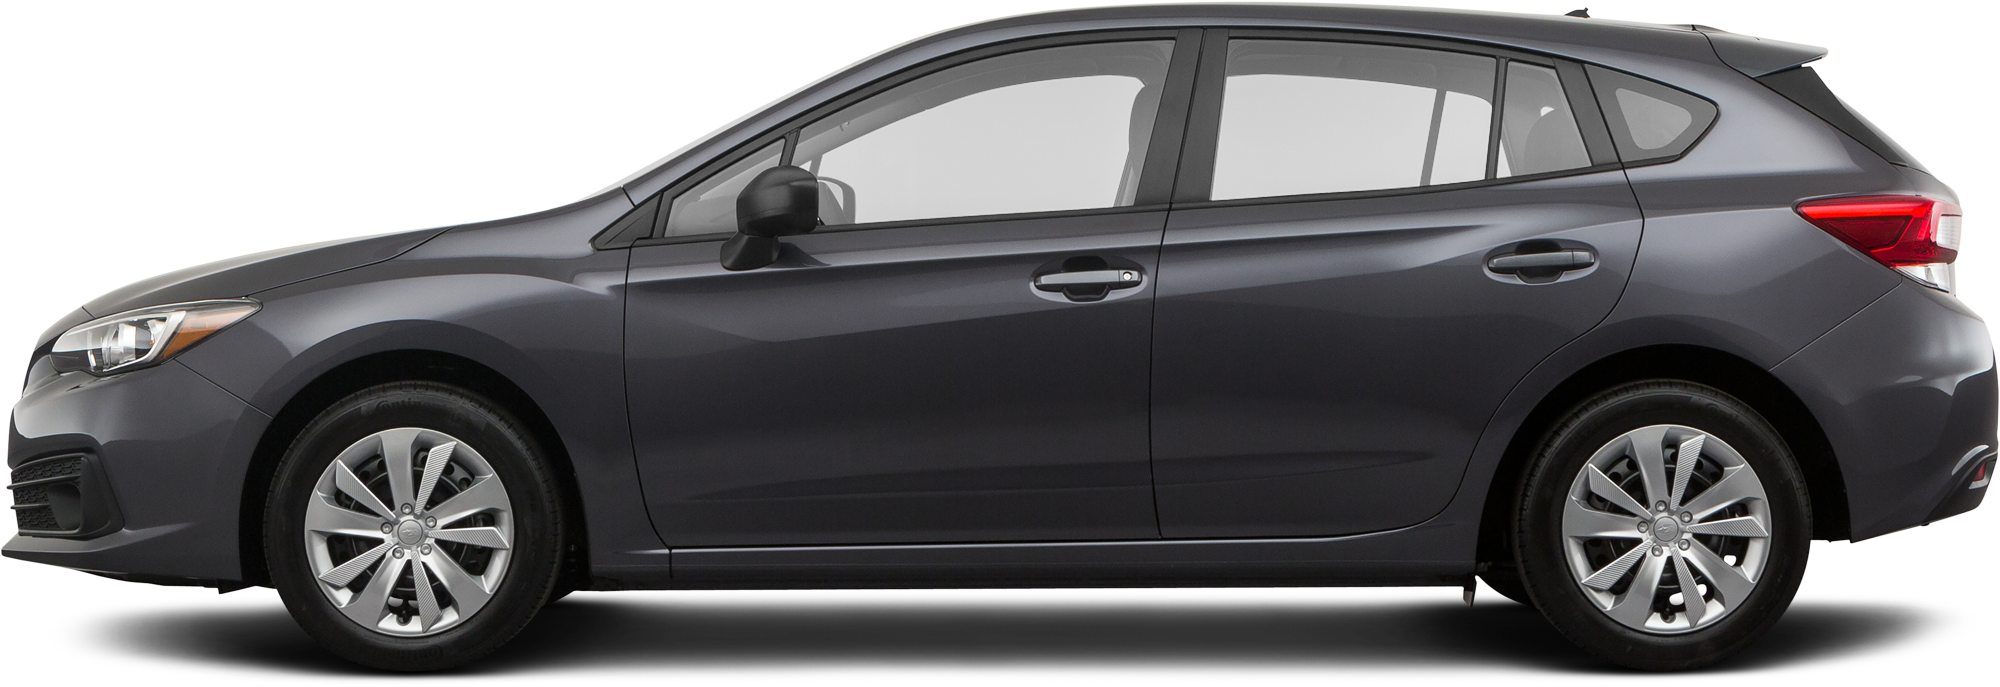 2021 Subaru Impreza 5-door Base Trim Level